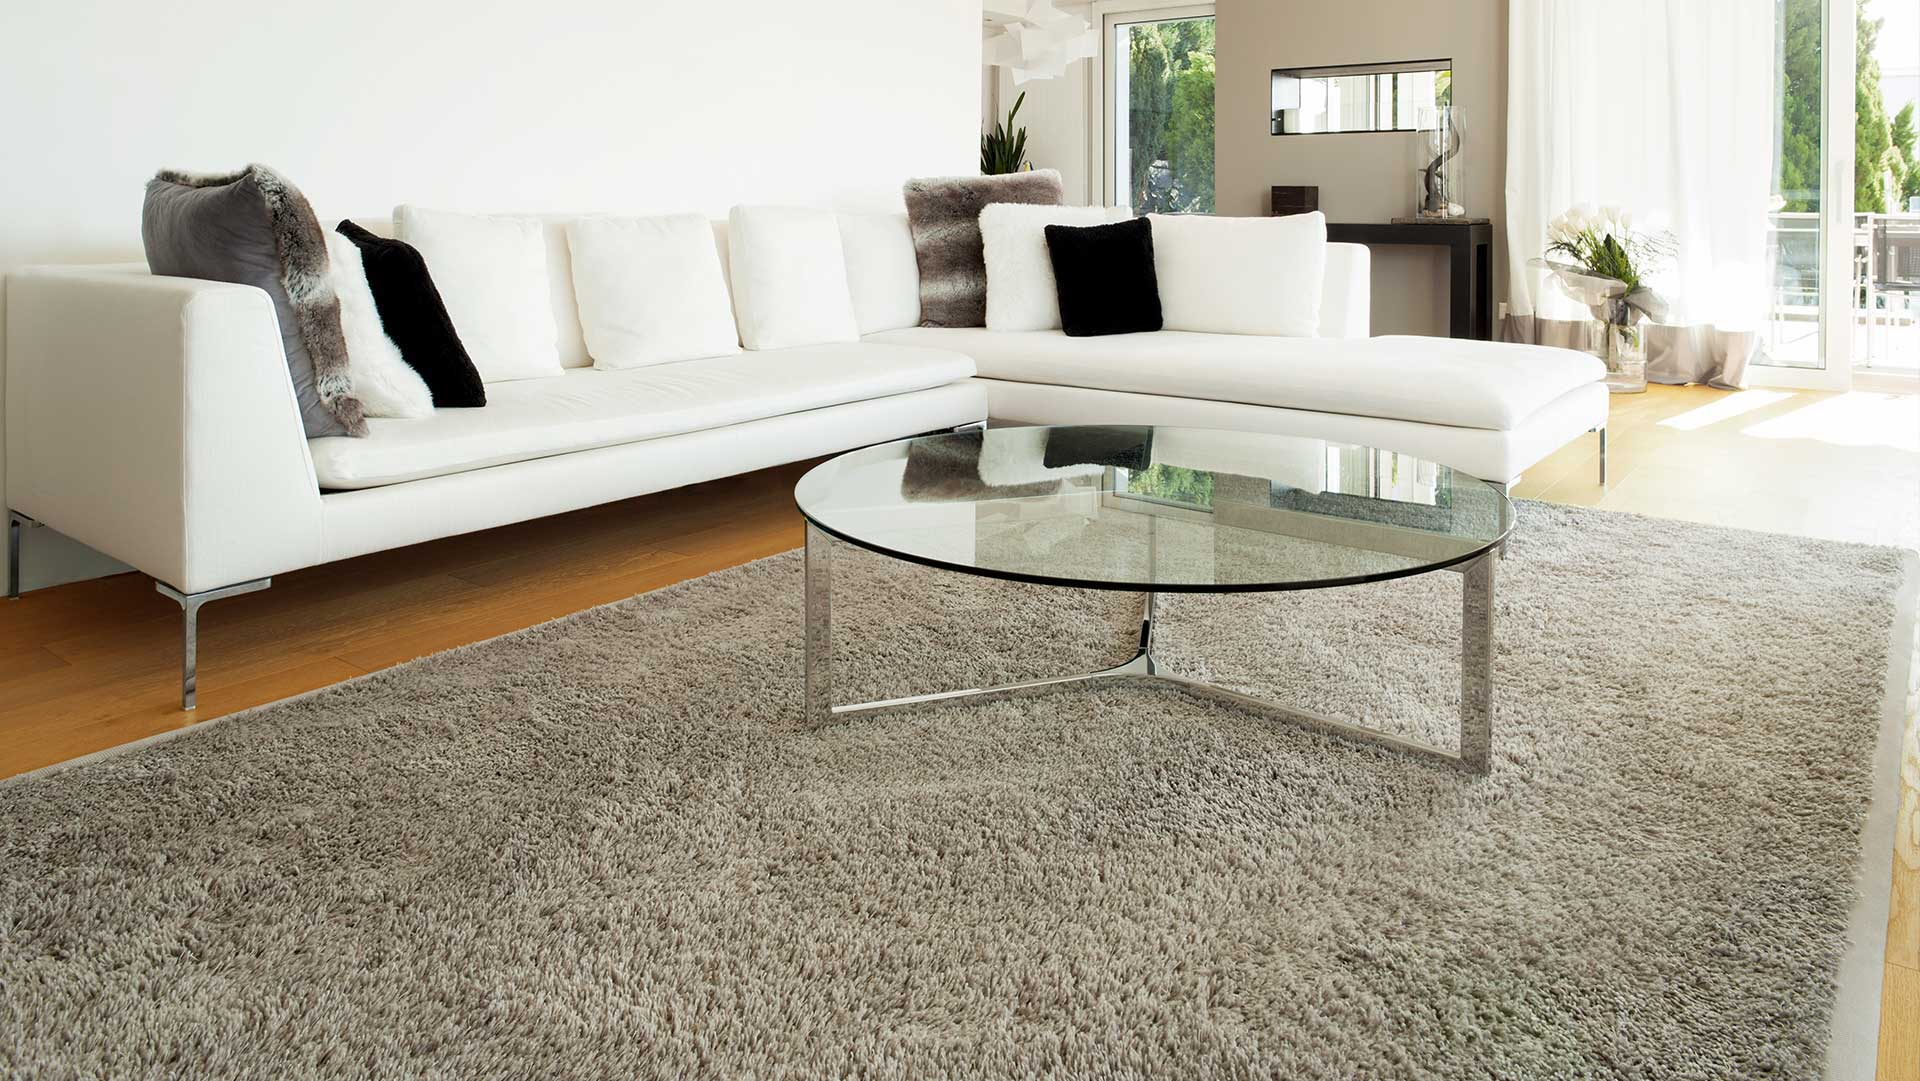 Carpet Cleaning Services, Air Duct Cleaning and Furniture Cleaning Services